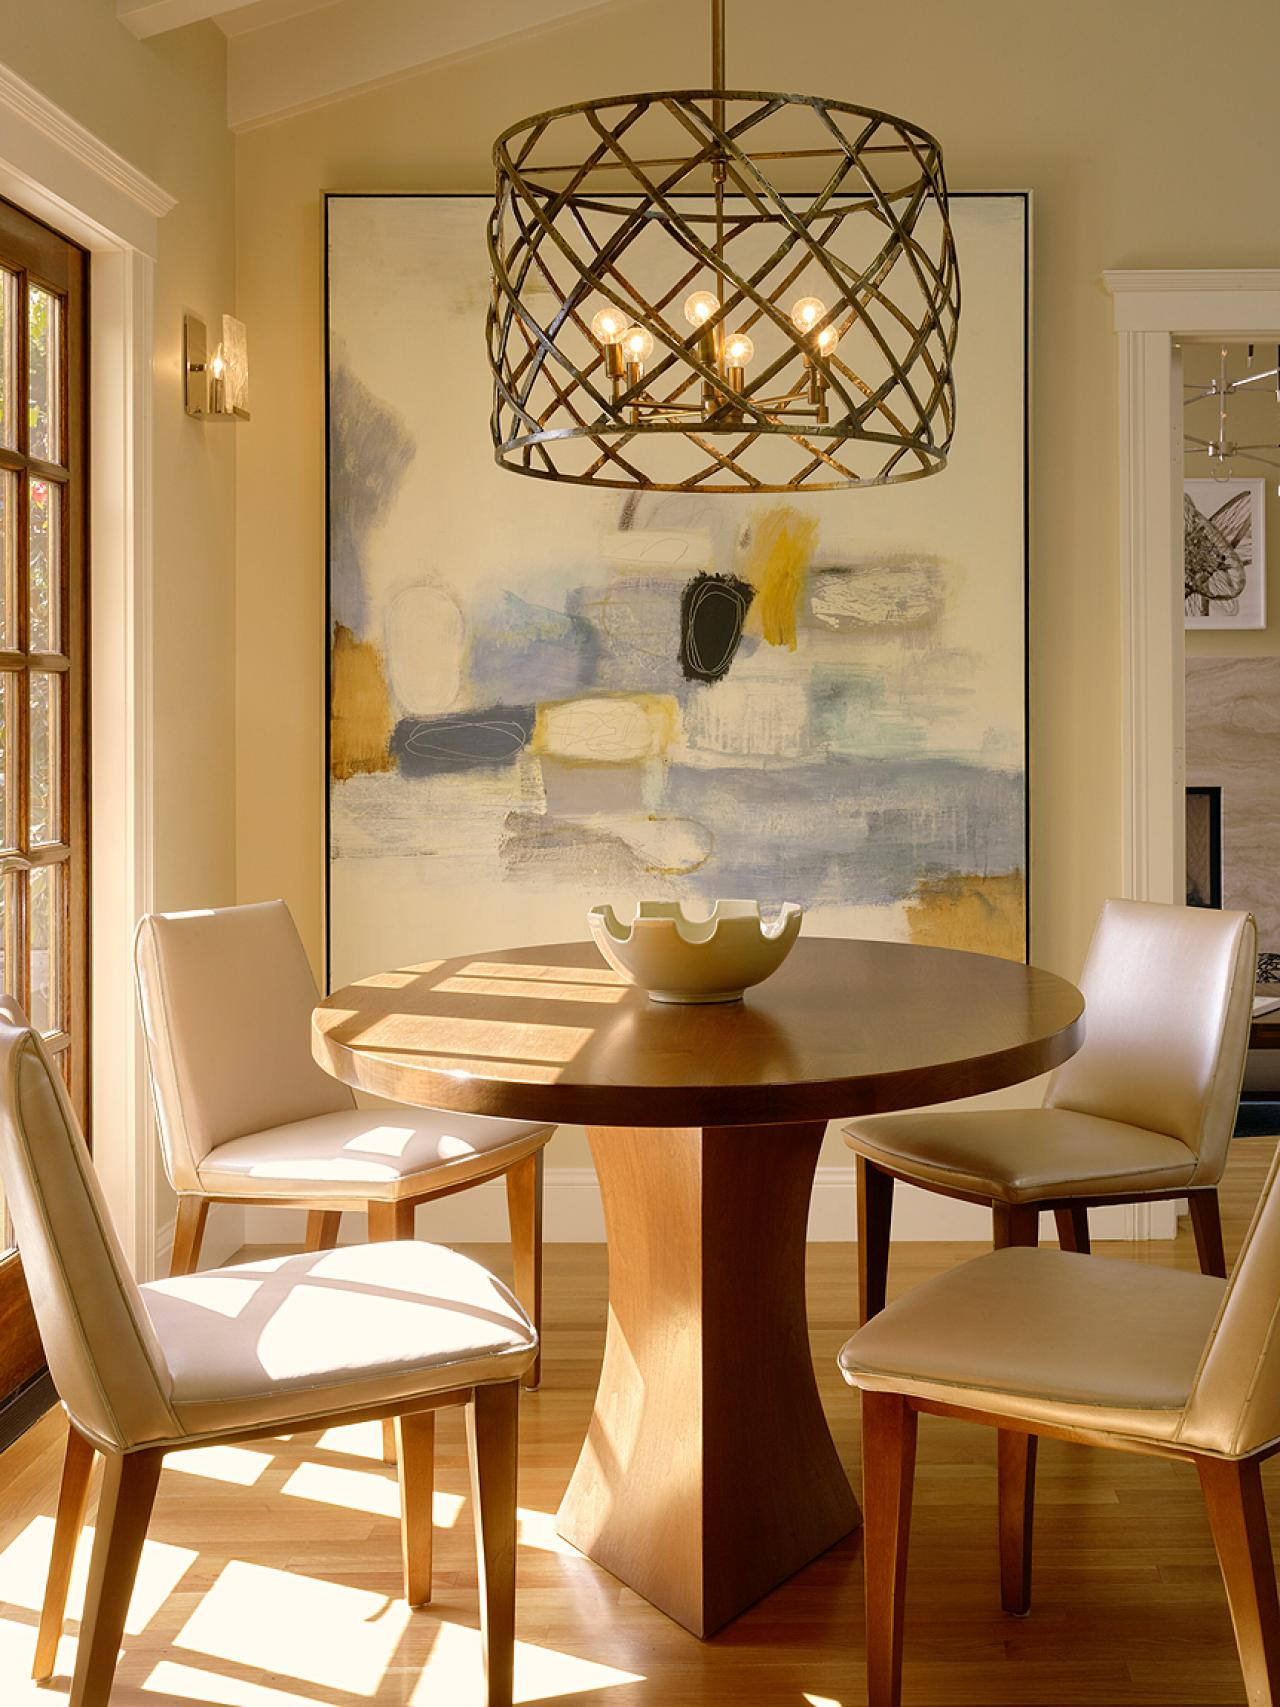 Dining Room Light Fixtures Under $500 | HGTV\'s Decorating & Design ...